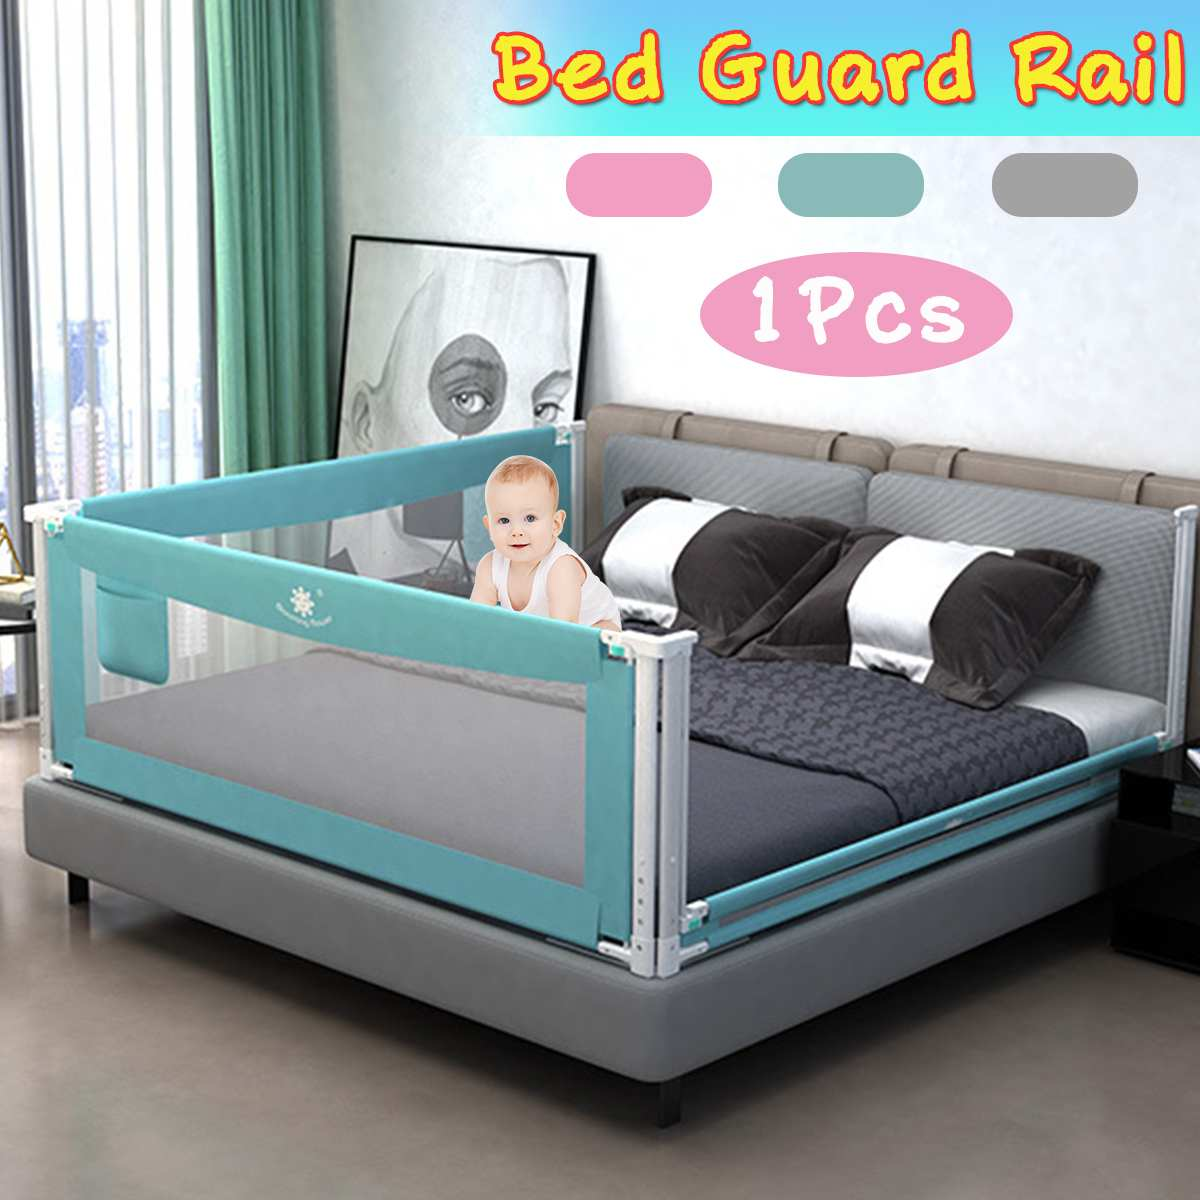 Baby Bed Fence Safety Baby Playpen Bed Guard Rail For Children Infants Kids Bedding Crib Barrier Aluminum 5-level Lifting Rails